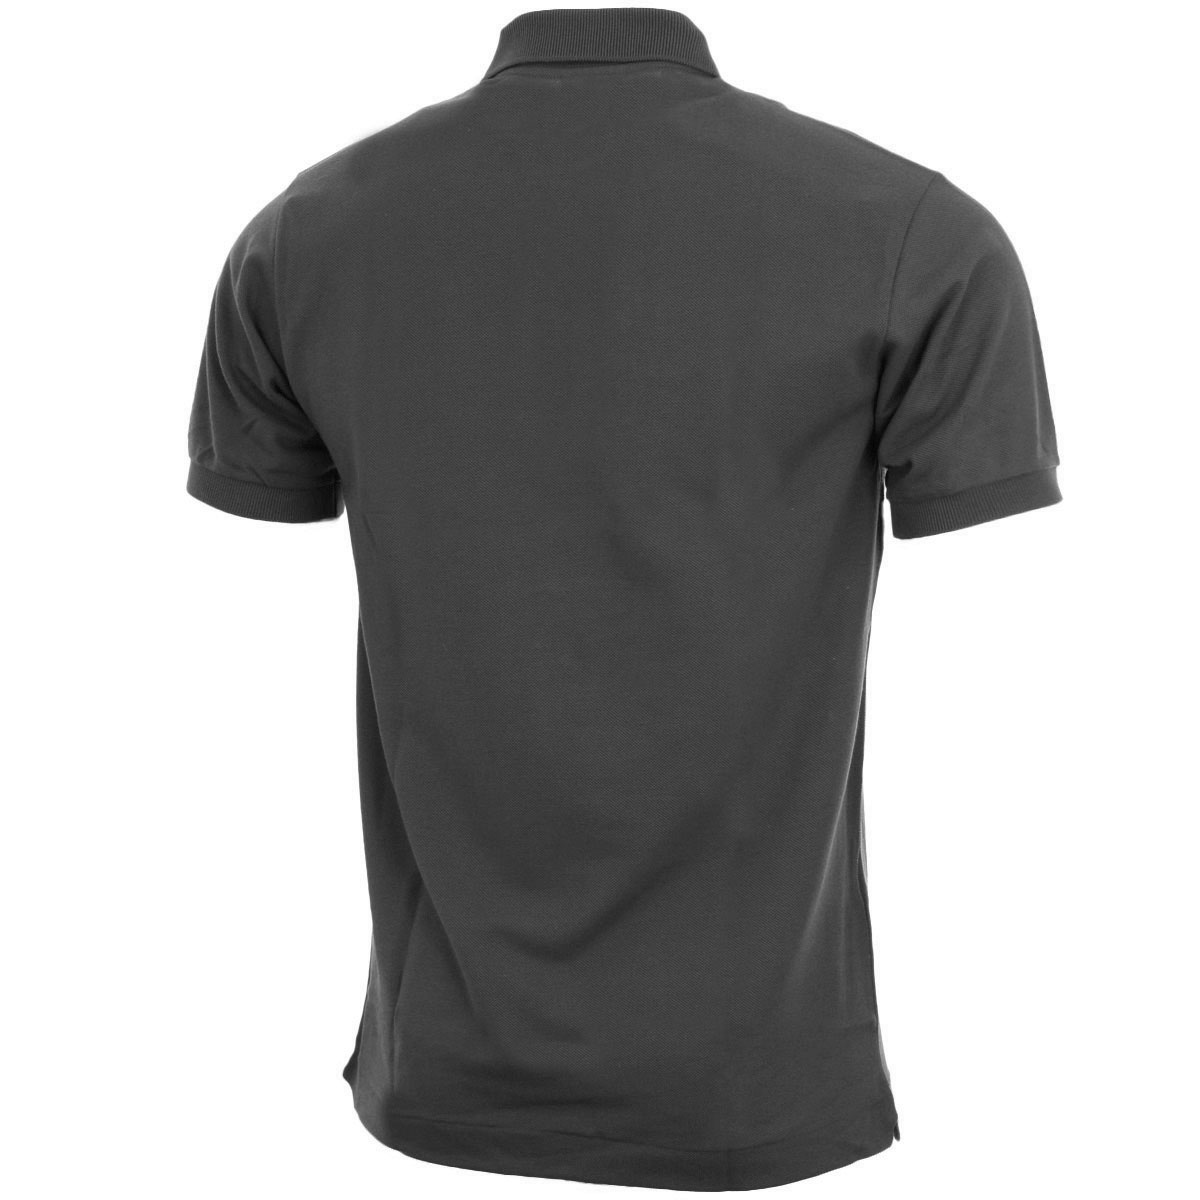 Lacoste-Mens-Classic-Cotton-L1212-Short-Sleeve-Polo-Shirt-31-OFF-RRP thumbnail 33